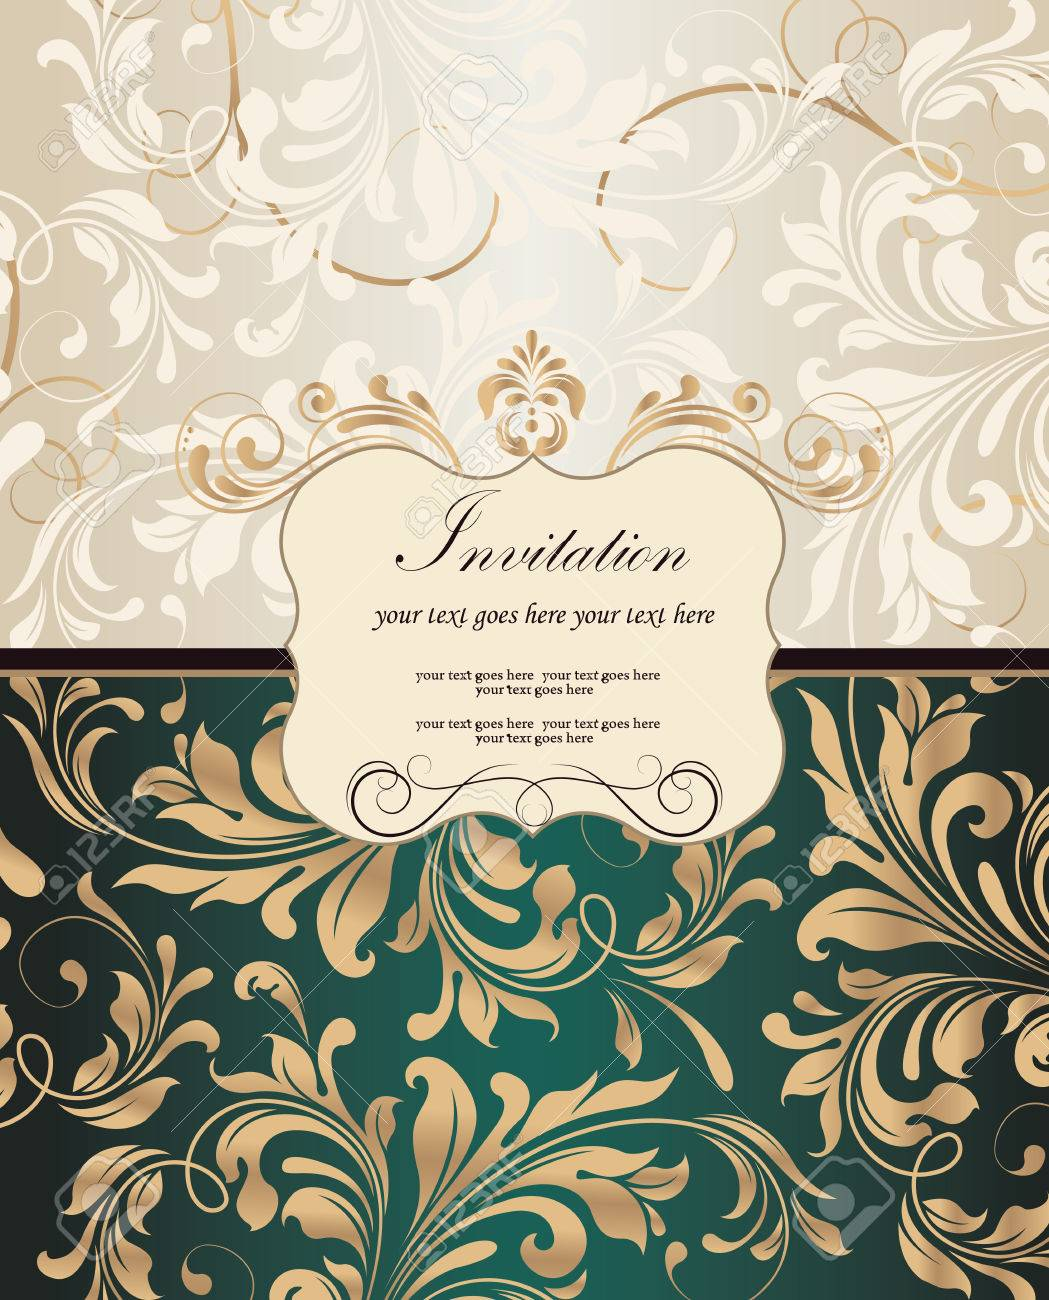 Abstract Floral Design Gold And Beige Flowers Leaves On Light Gray Dark Emerald Green Background With Plaque Text Label Vector Illustration